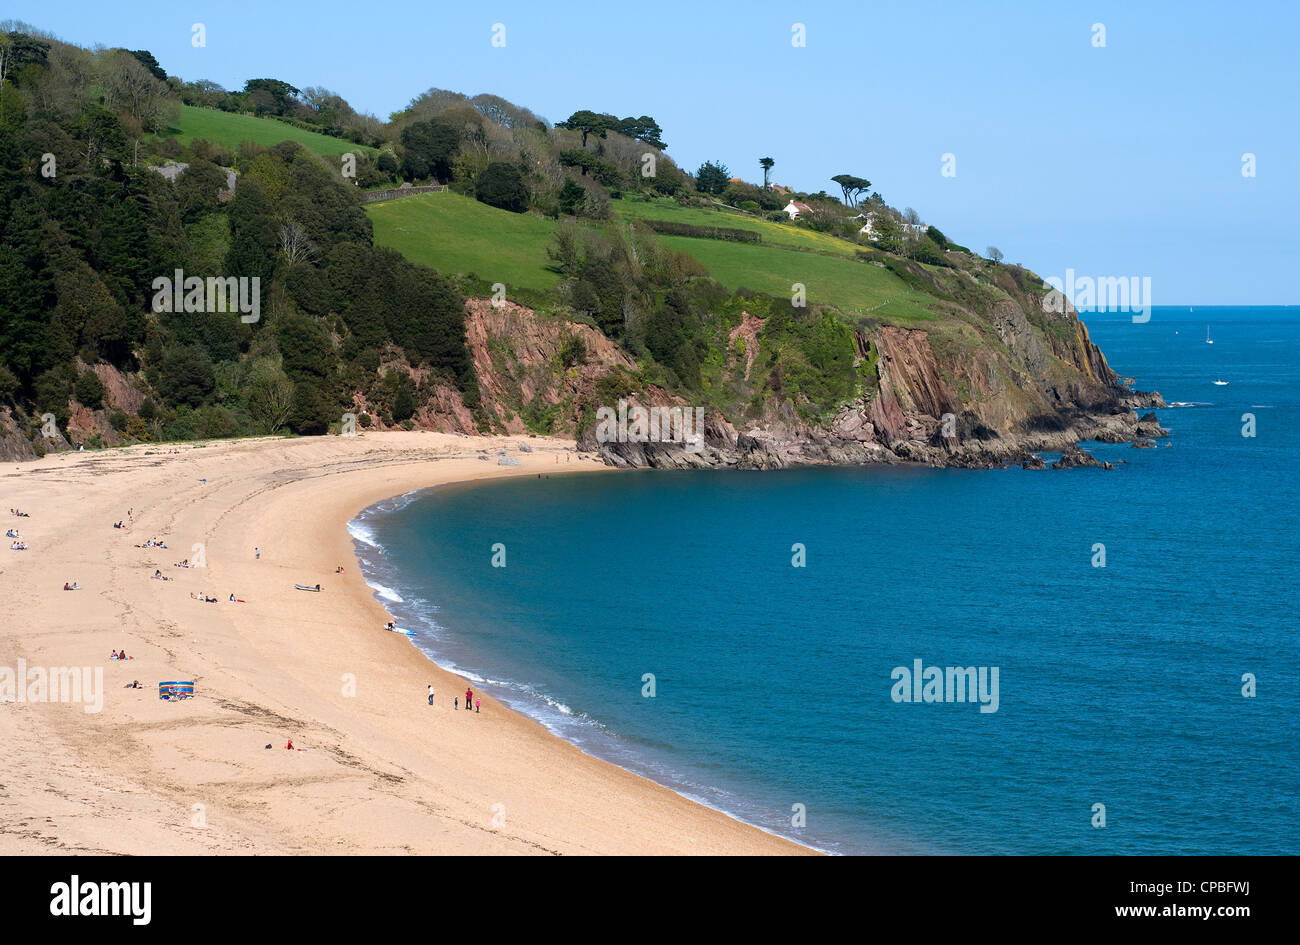 blackpool sands,Devon,Blackpool sands,South Hams,Devon,sands, Bay,South Hams,Devon, Battle of Blackpool Sands - Stock Image